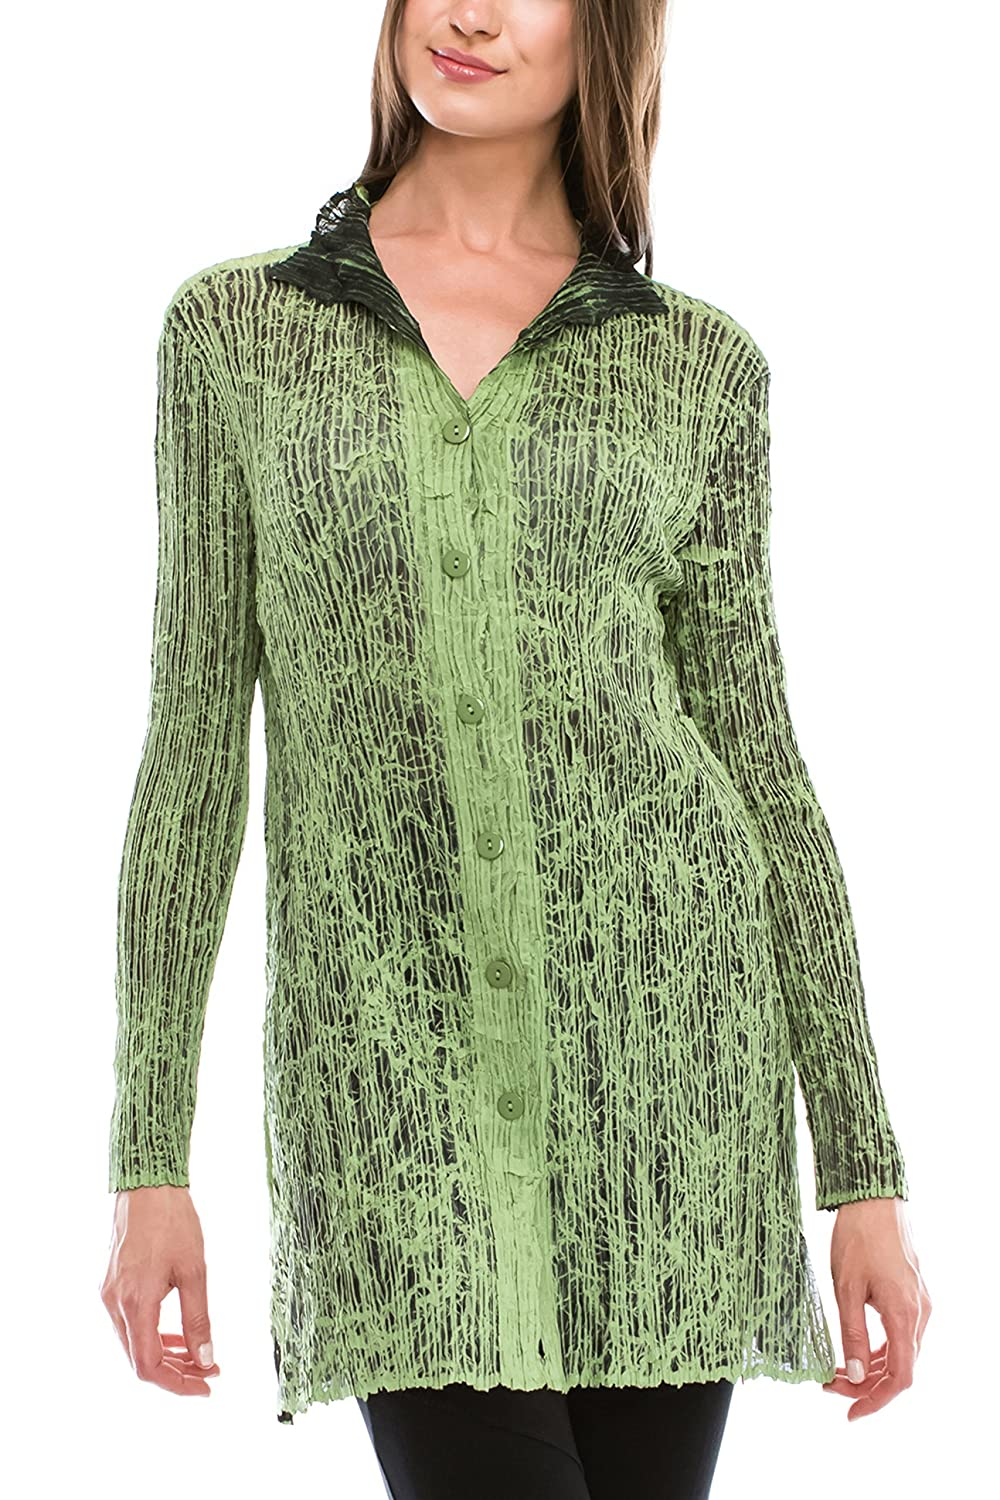 Petala Women's One Size Fits All Printed Button-Down Pleated Tunic Top in Green